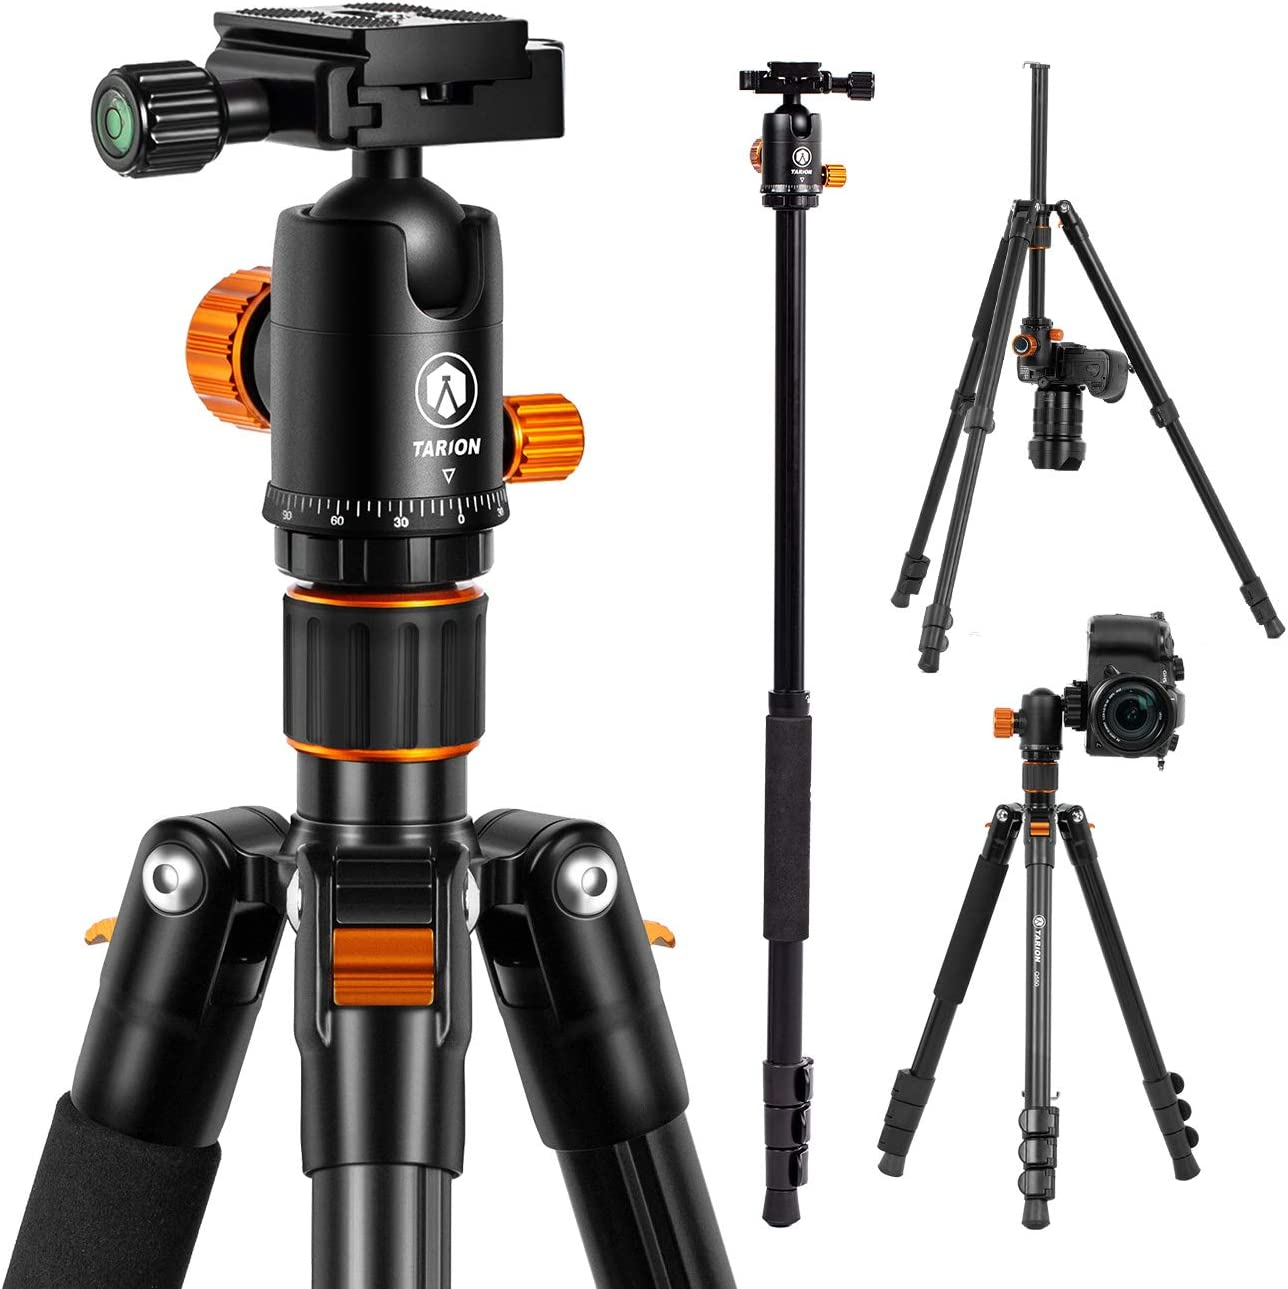 "TARION Camera Tripod Monopod 61in with Panorama Ball Head Aluminium Travel Tripod for DSLR Mirrorless Cameras Support Macro Shots Counter Weight 13lb Payload Lightweight 16.9"" Foldable Size"